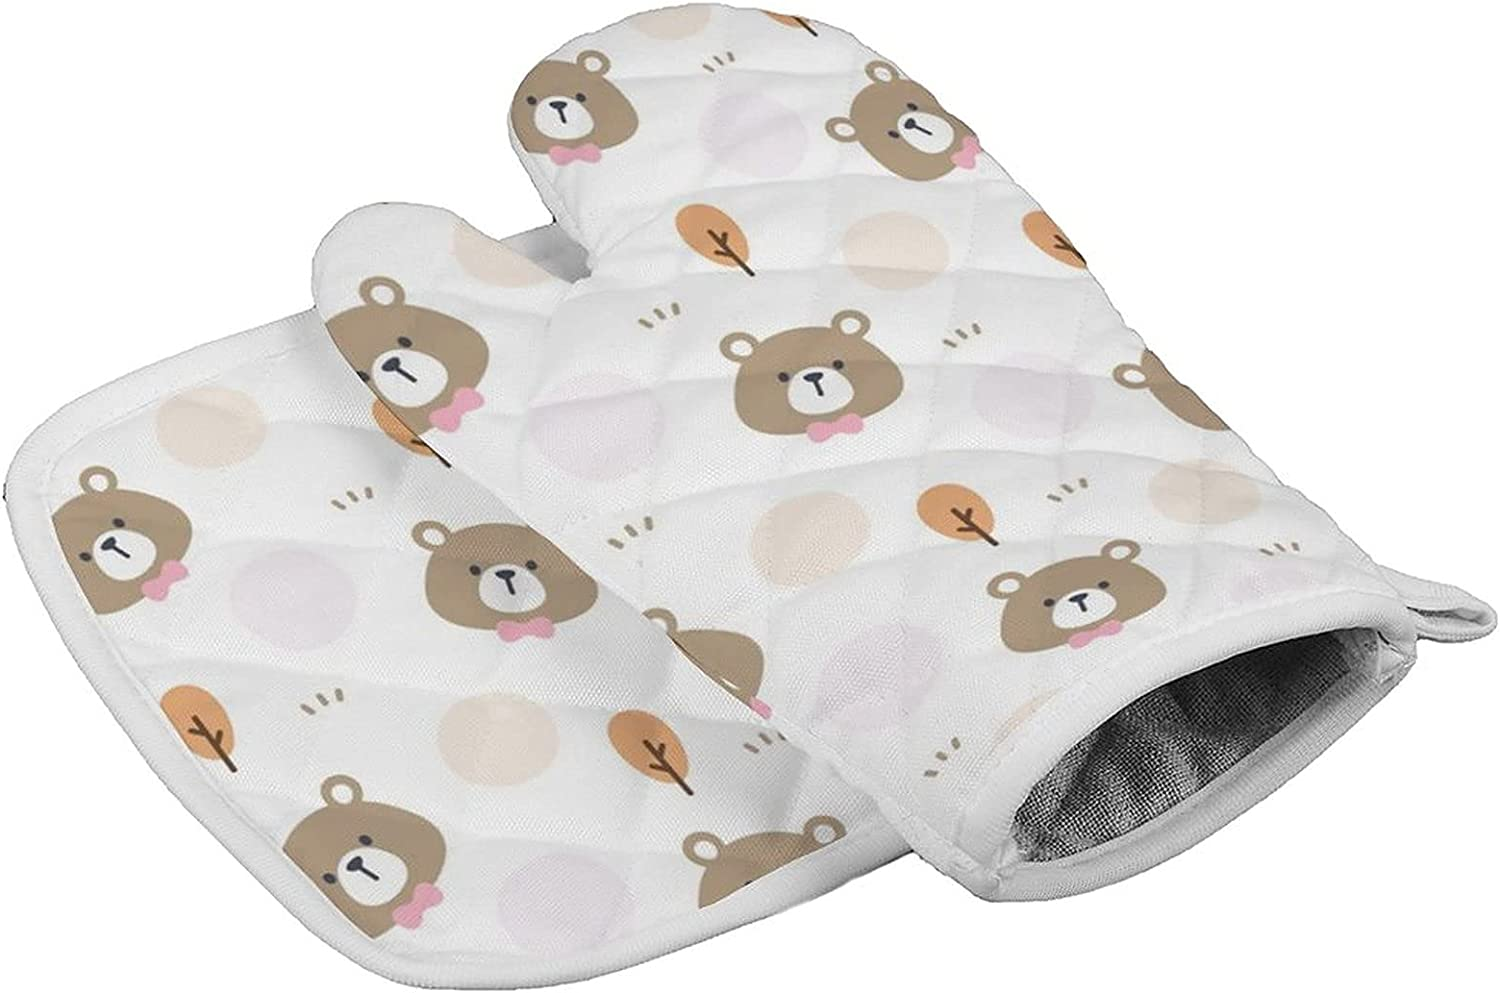 Cute Bear with Bow Tie and Tree Oven Mitts and Pot Holders Sets Cute for Cooking BBQ Grilling, Kitchen Oven Mitts Set Heat Resistant for Women for Big Hands